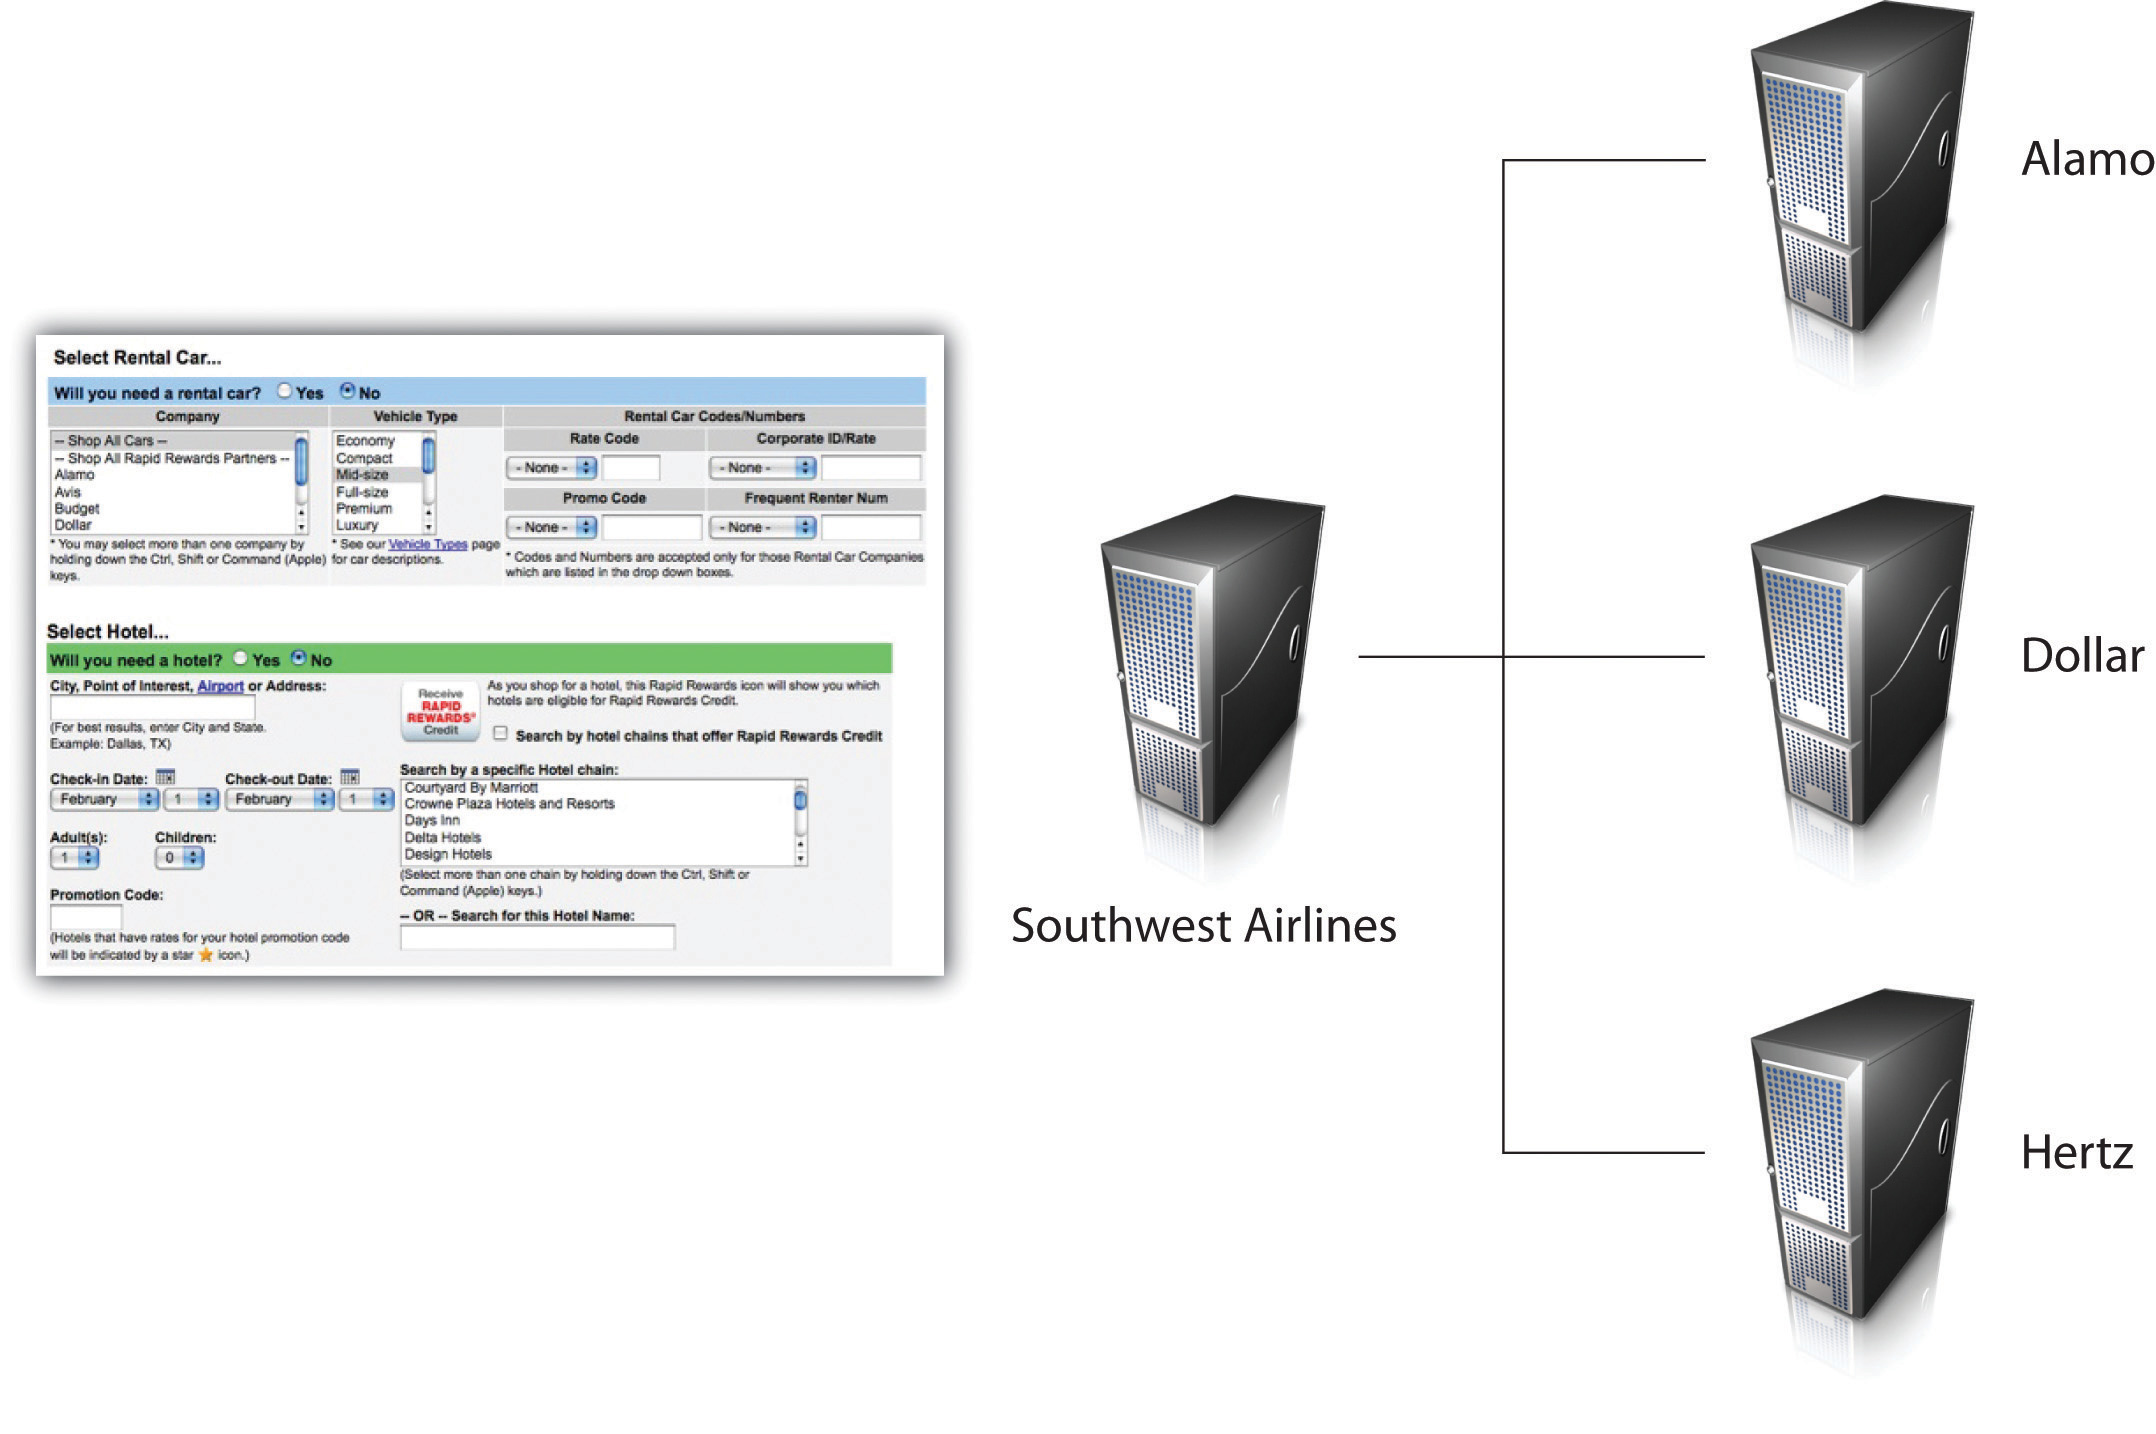 Southwest.com uses Web services to allow car rental and hotel firms to book services through Southwest. This process transforms Southwest.com into a full-service online travel agent.